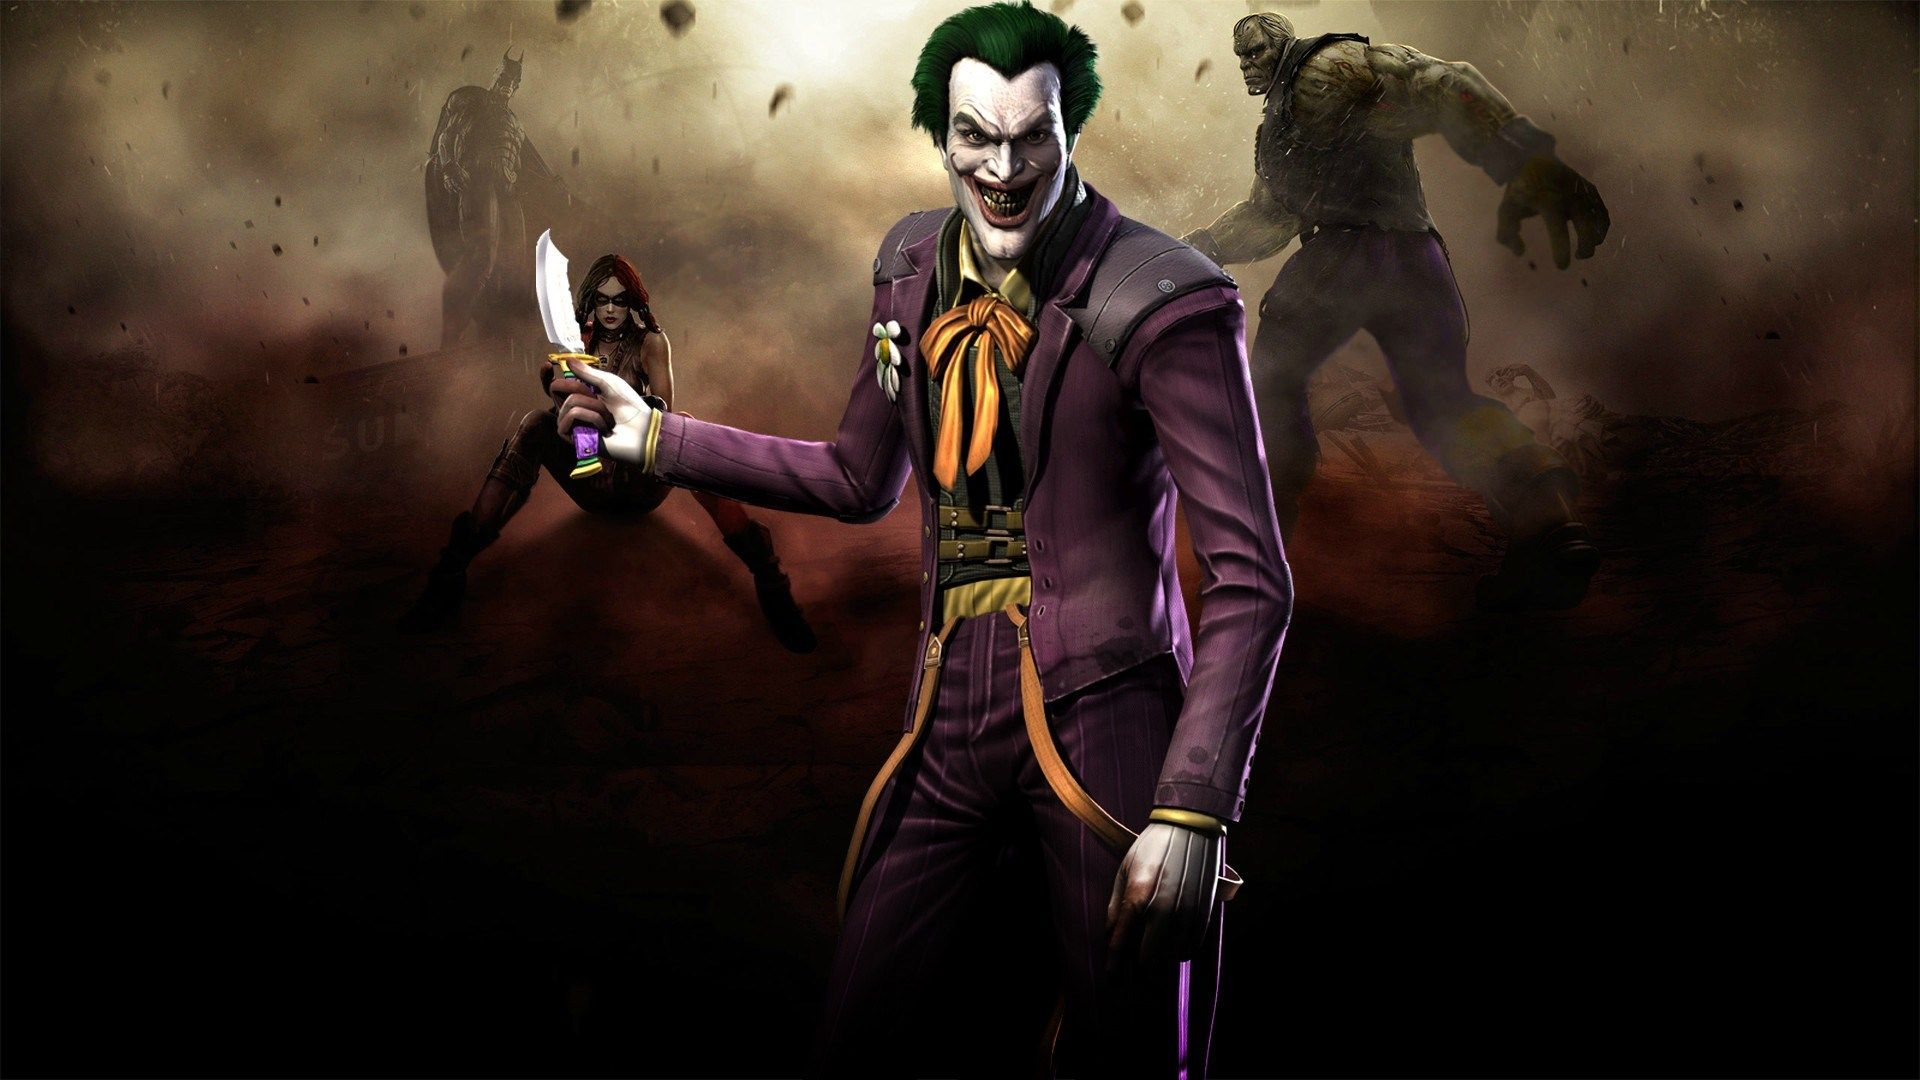 1920x1080 Injustice Gods Among Us Game Wallpaper Joker Wallpapers Batman Joker Wallpaper Joker